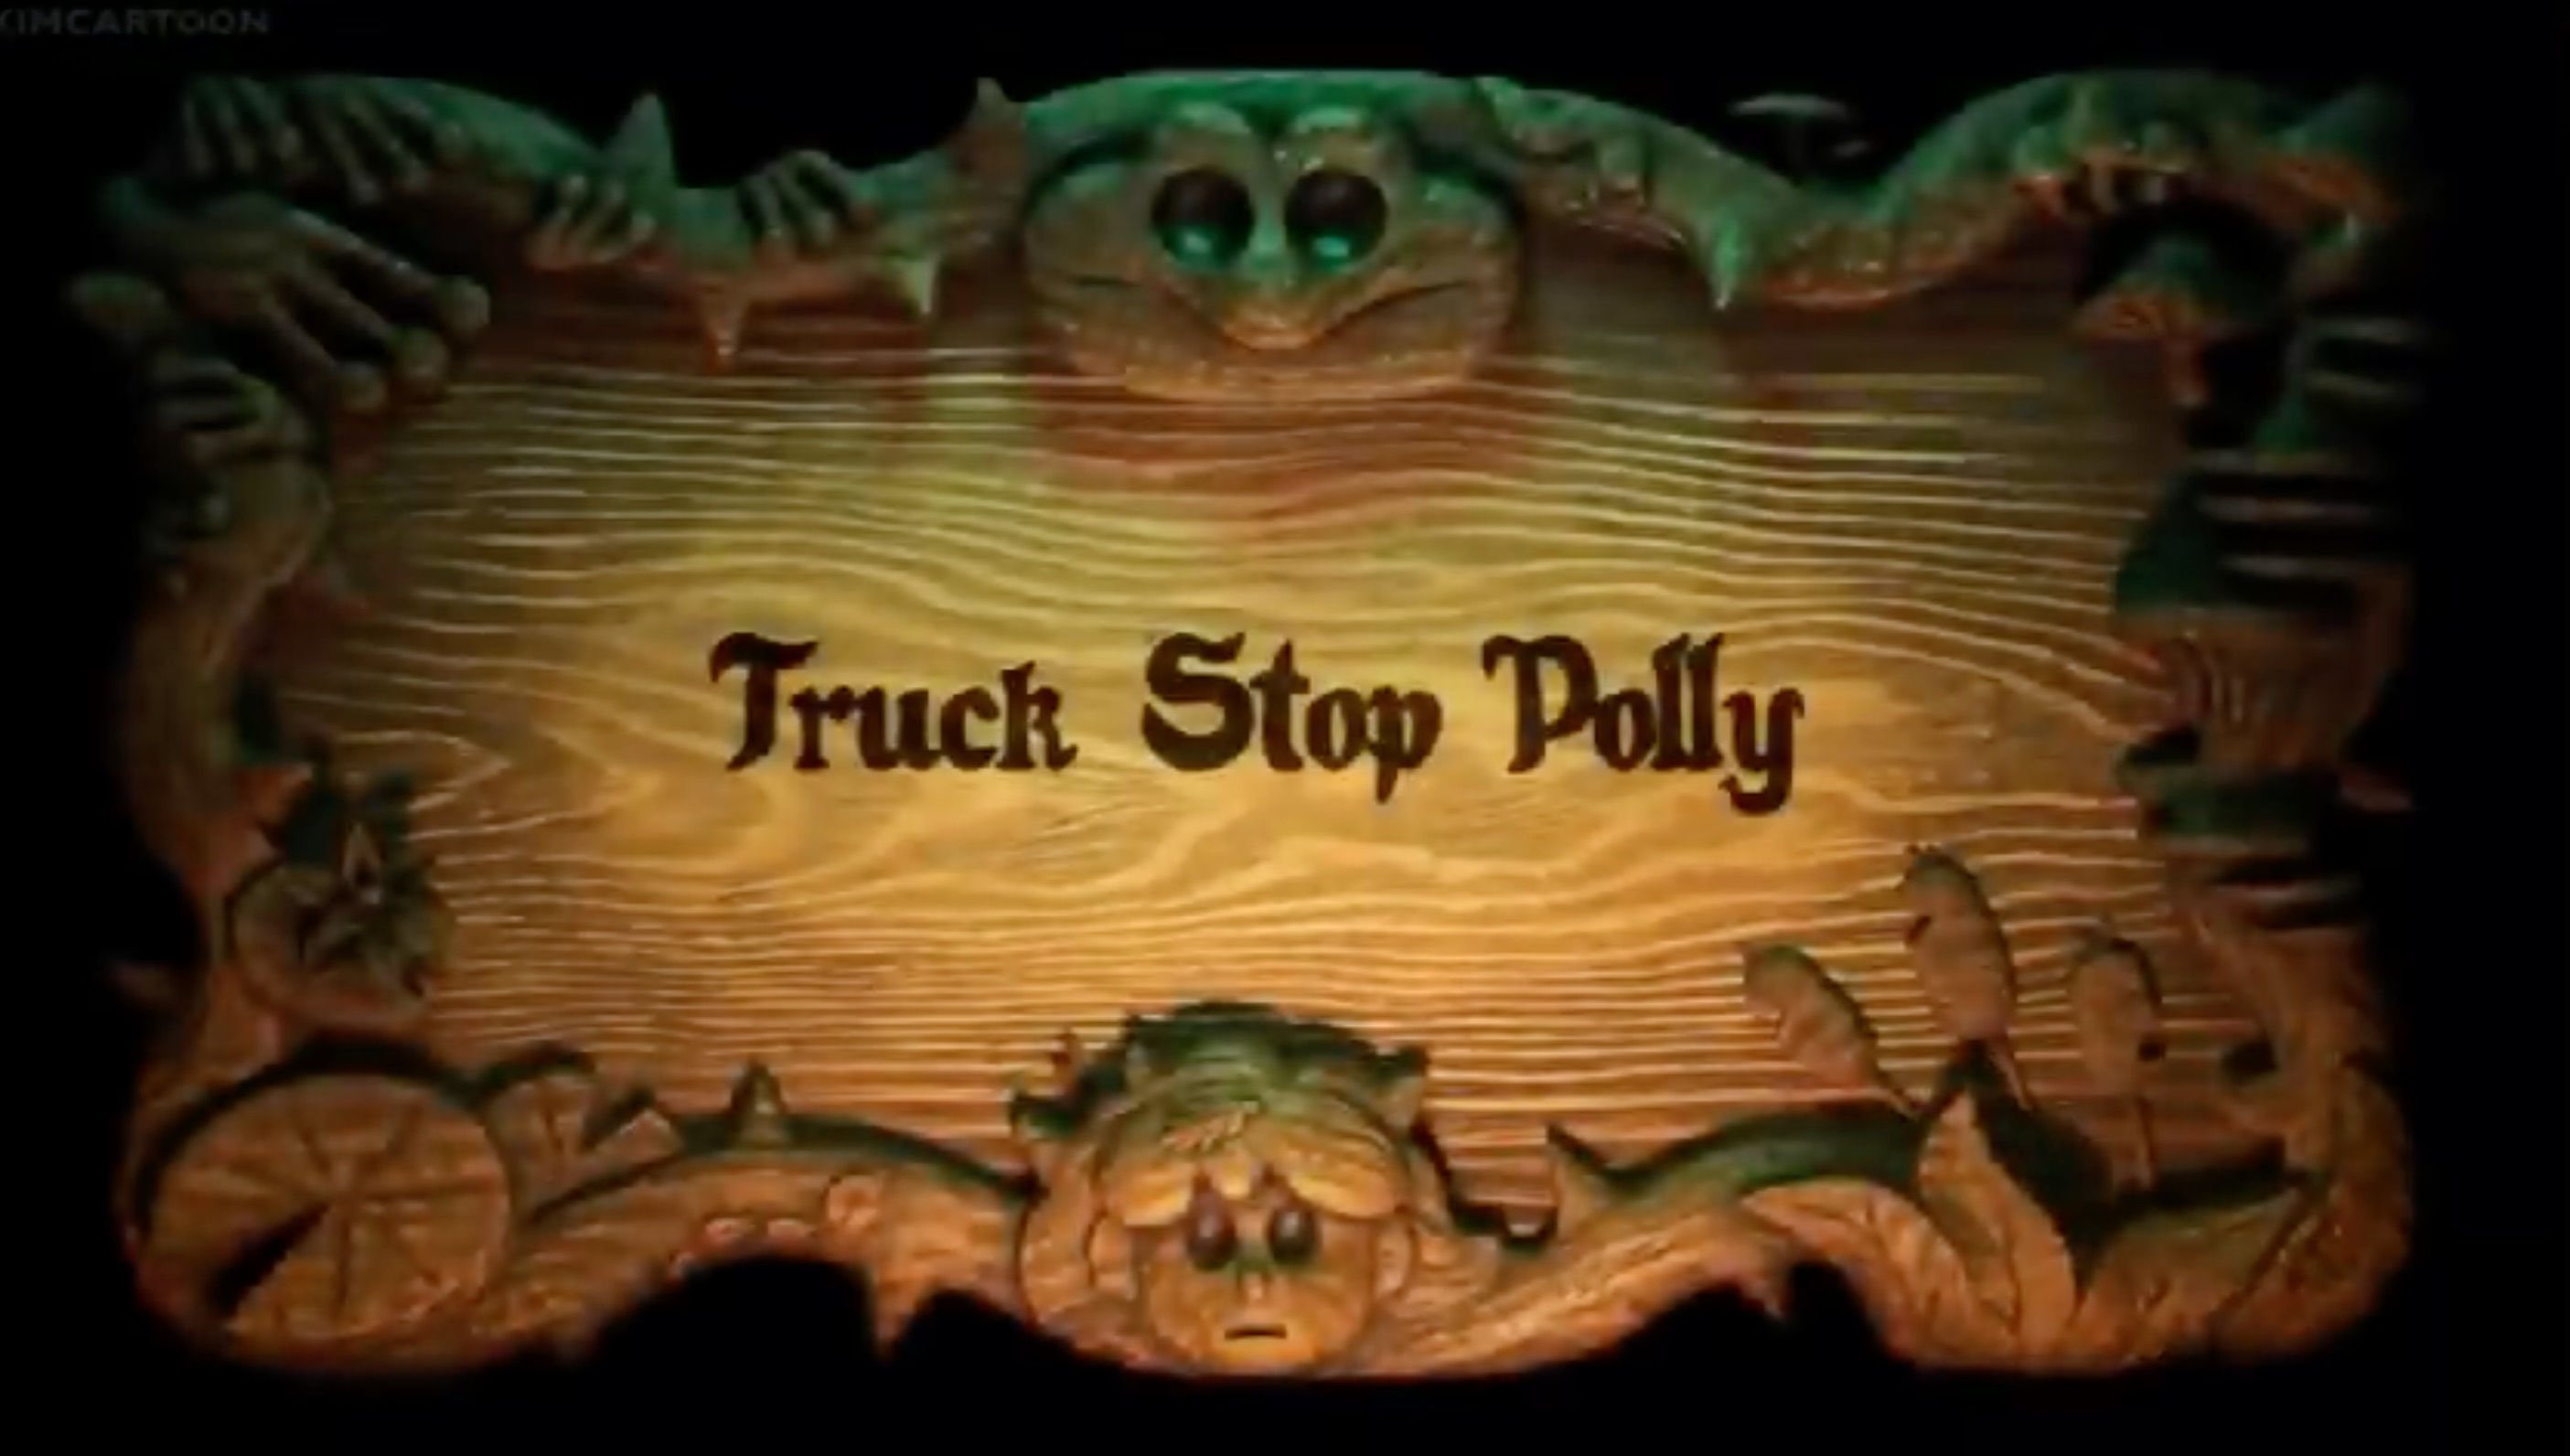 Truck Stop Polly